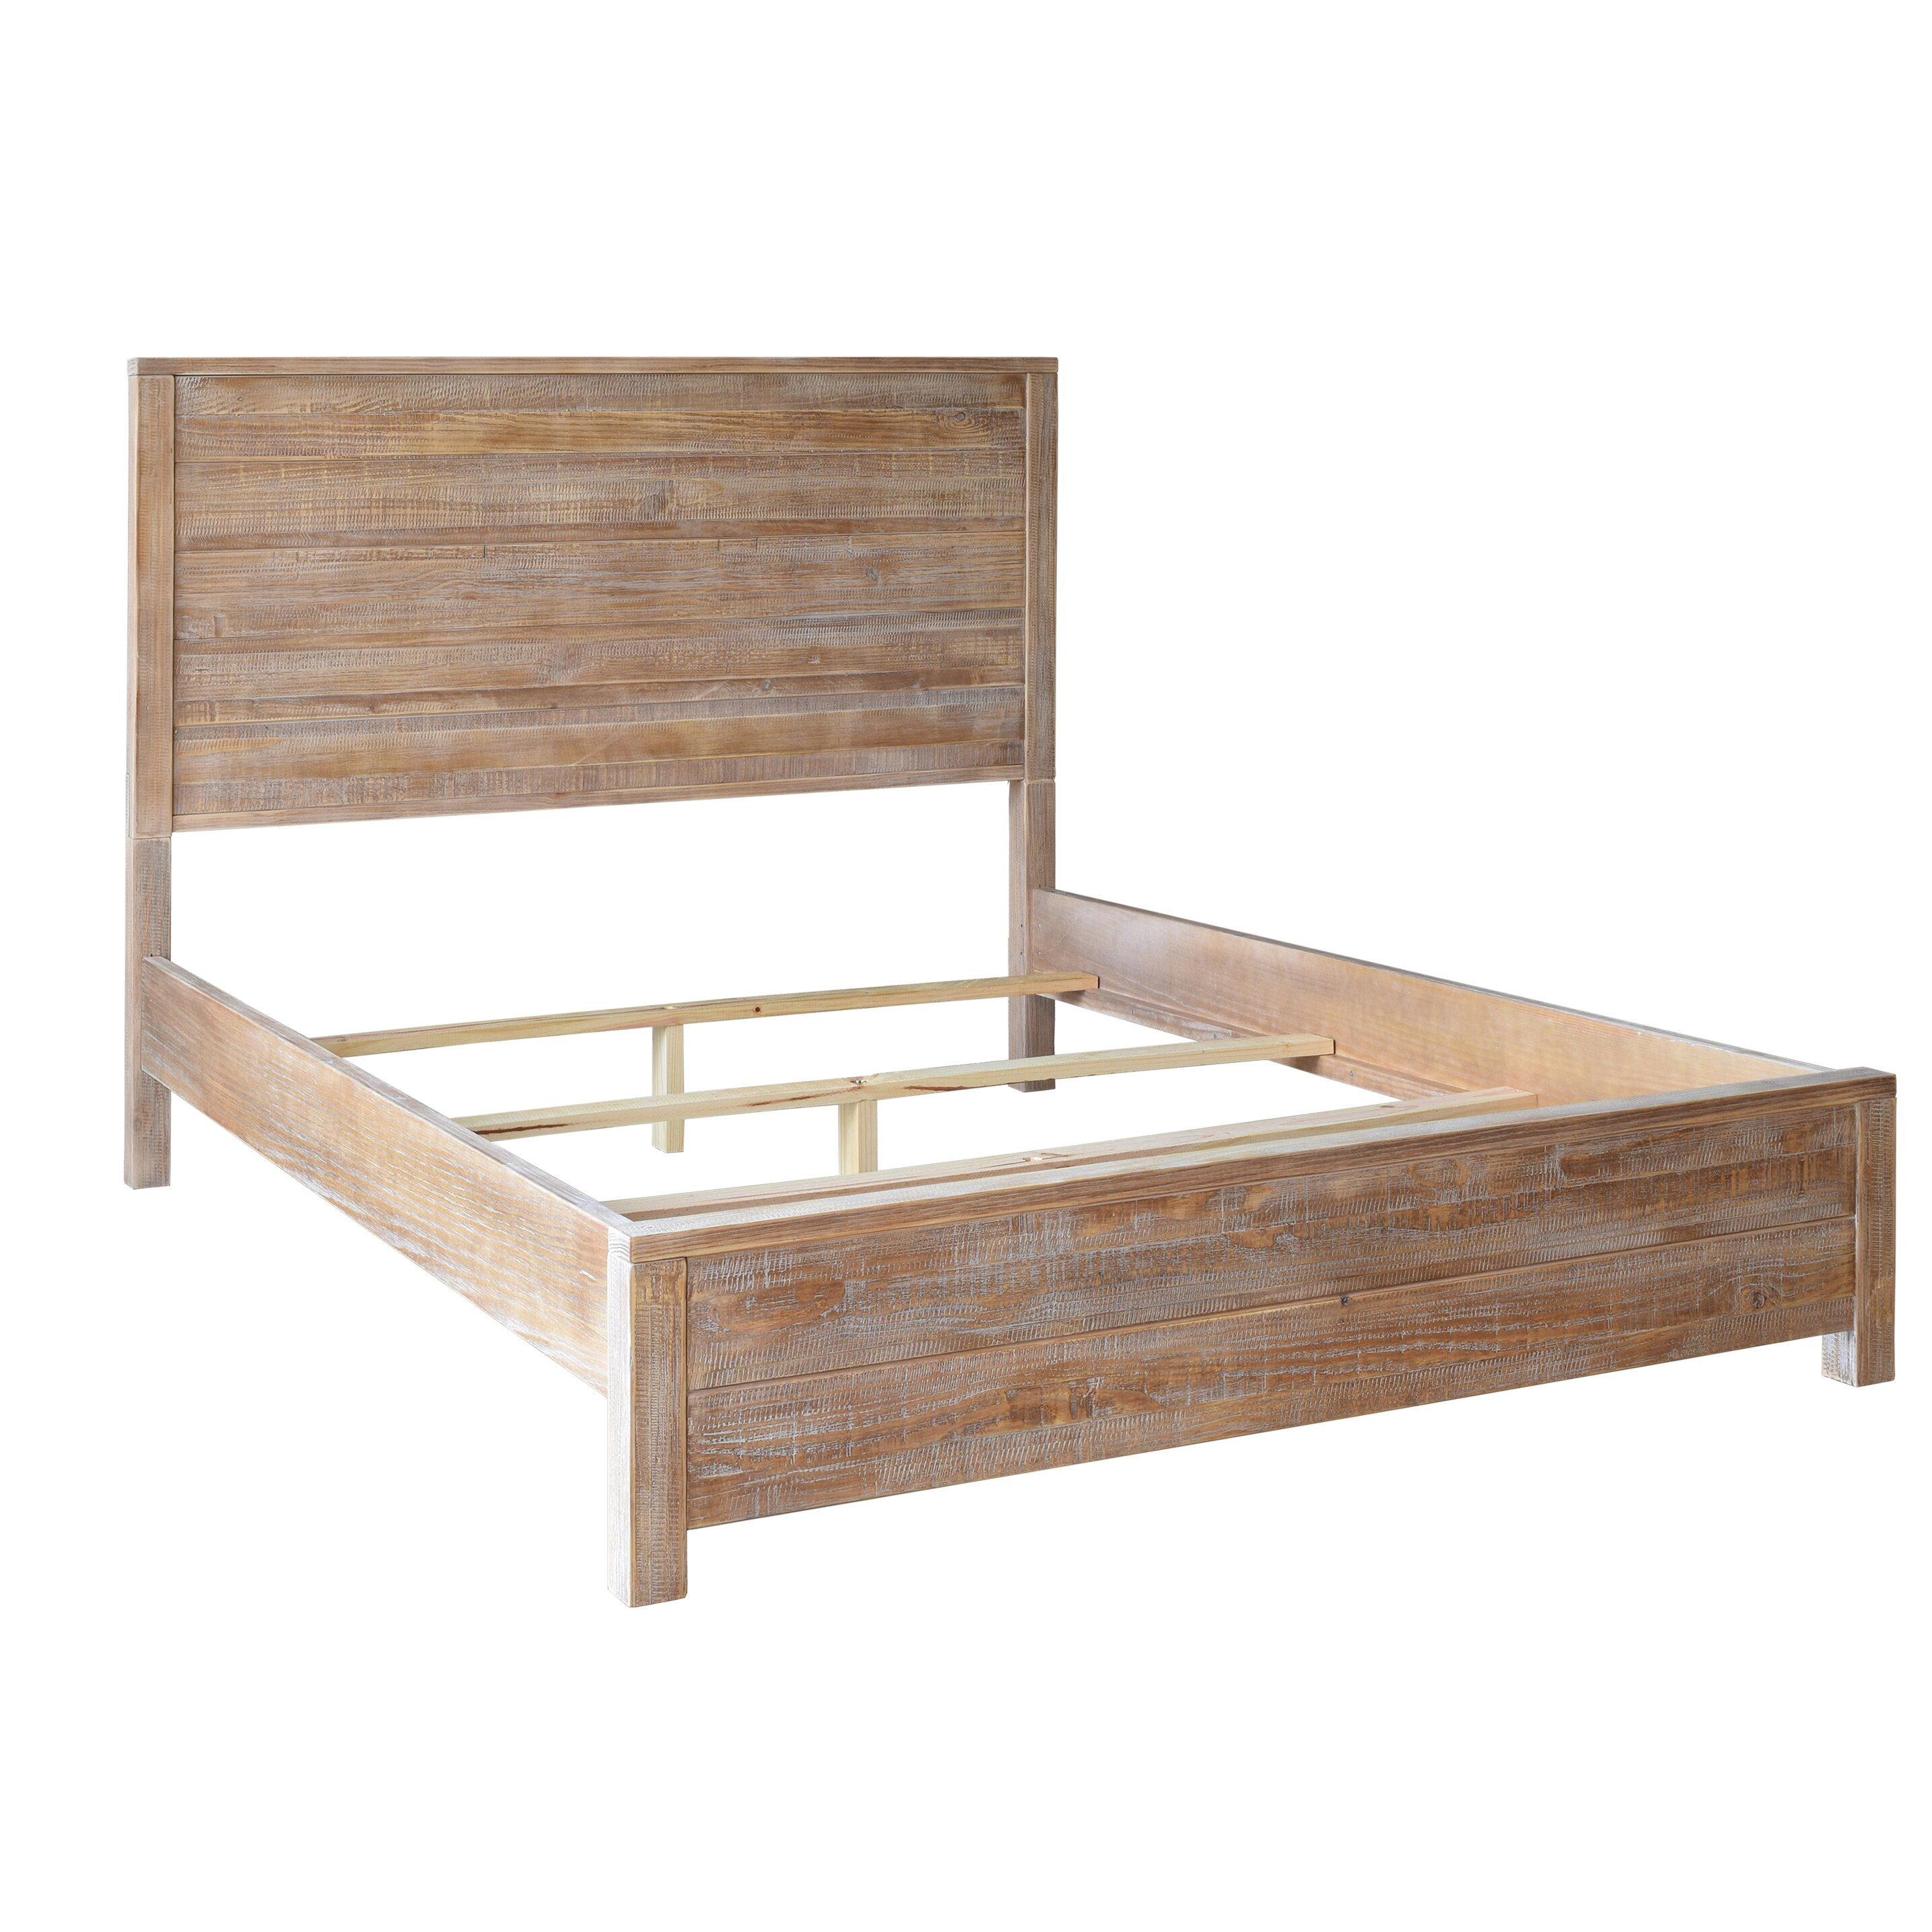 Furniture Stunning Display Of Wood Grain In A: Grain Wood Furniture Montauk Panel Bed & Reviews